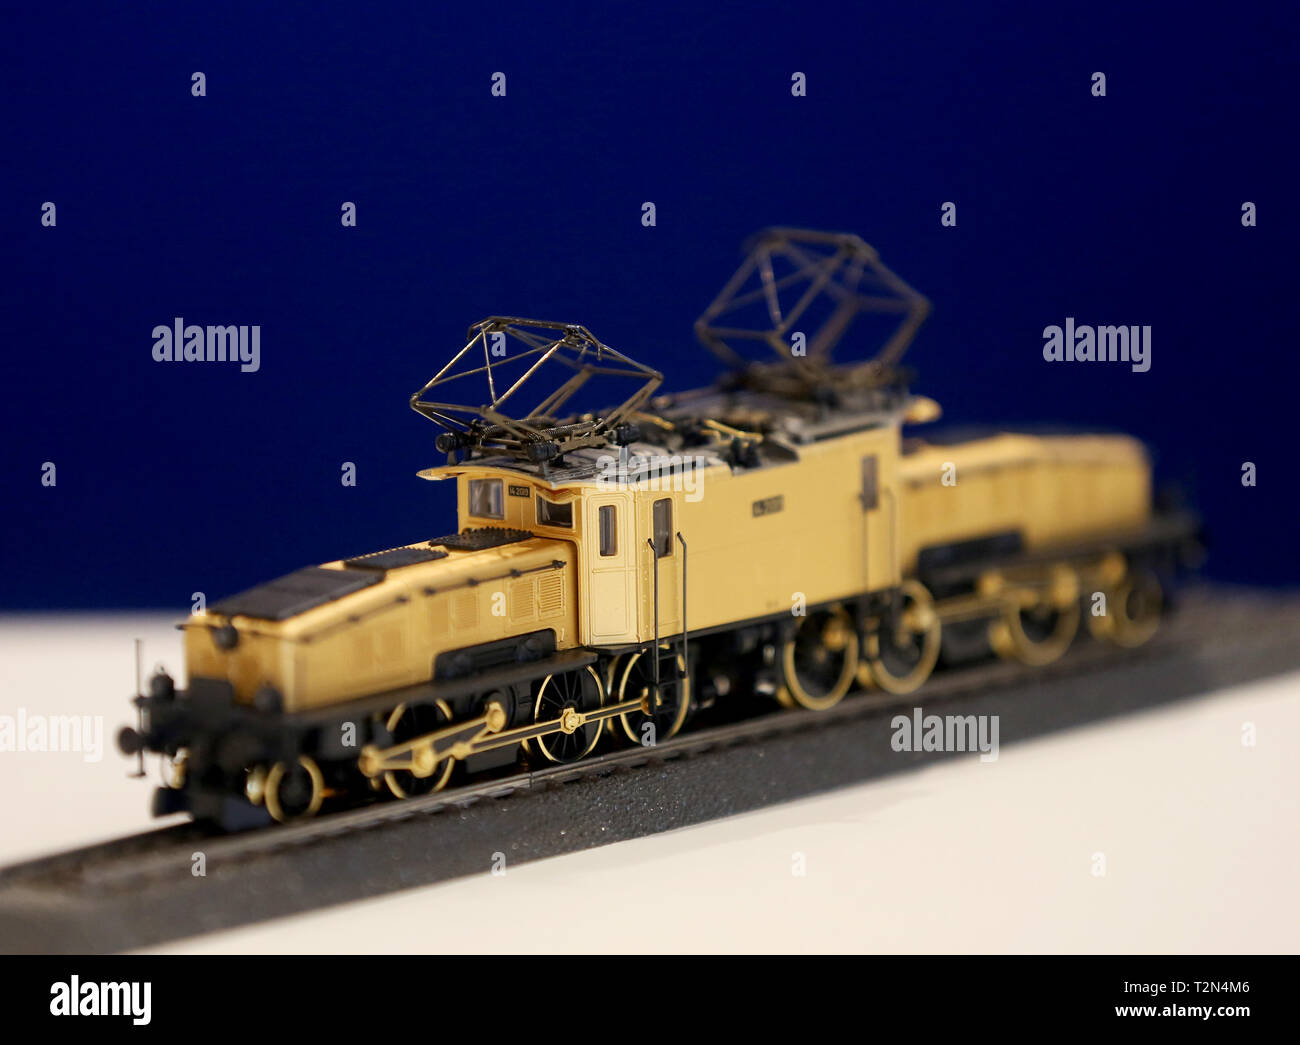 Model Locomotive Stock Photos & Model Locomotive Stock ... on crocodile cat, crocodile model, crocodile fight, crocodile skeletal system, crocodile illustration, crocodile vs, crocodile anatomy, crocodile map, crocodile brand, crocodile suicide, crocodile diorama, crocodile in africa, crocodile running, crocodile graphic, crocodile skull, crocodile dog, crocodile draw, crocodile prey, crocodile babies,